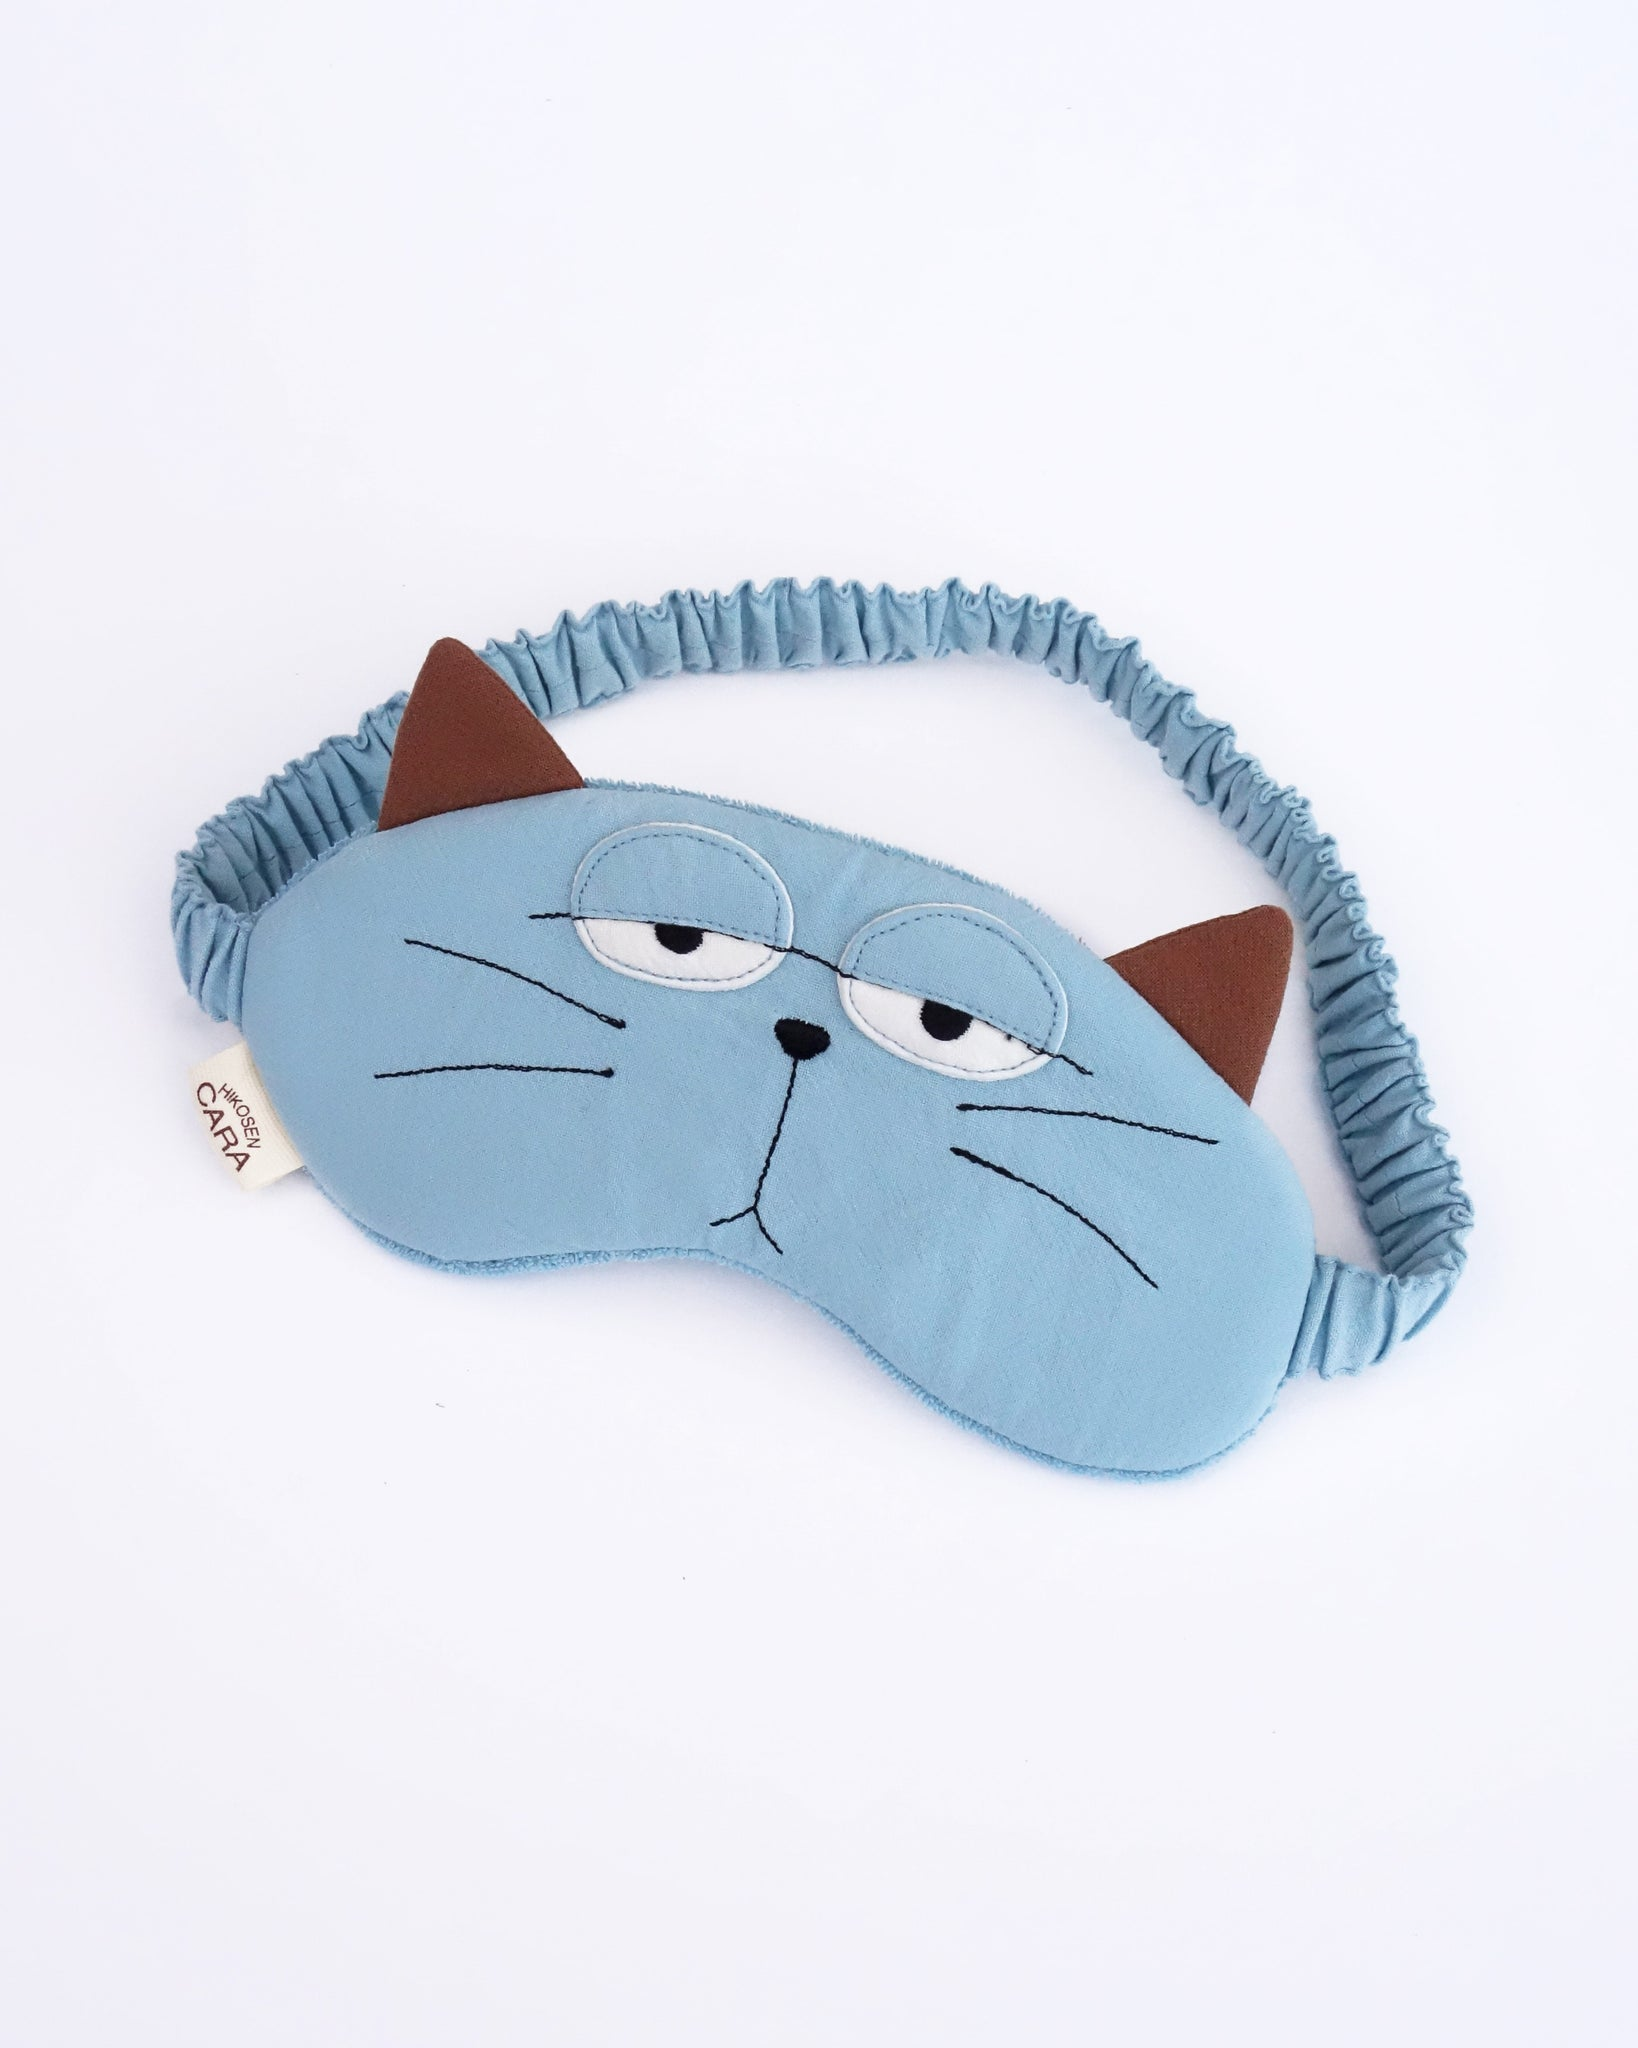 Cat eye mask in blue color with appliqué, embroidery, 3D cat ears, elastic strap, foam-padding, in front view.